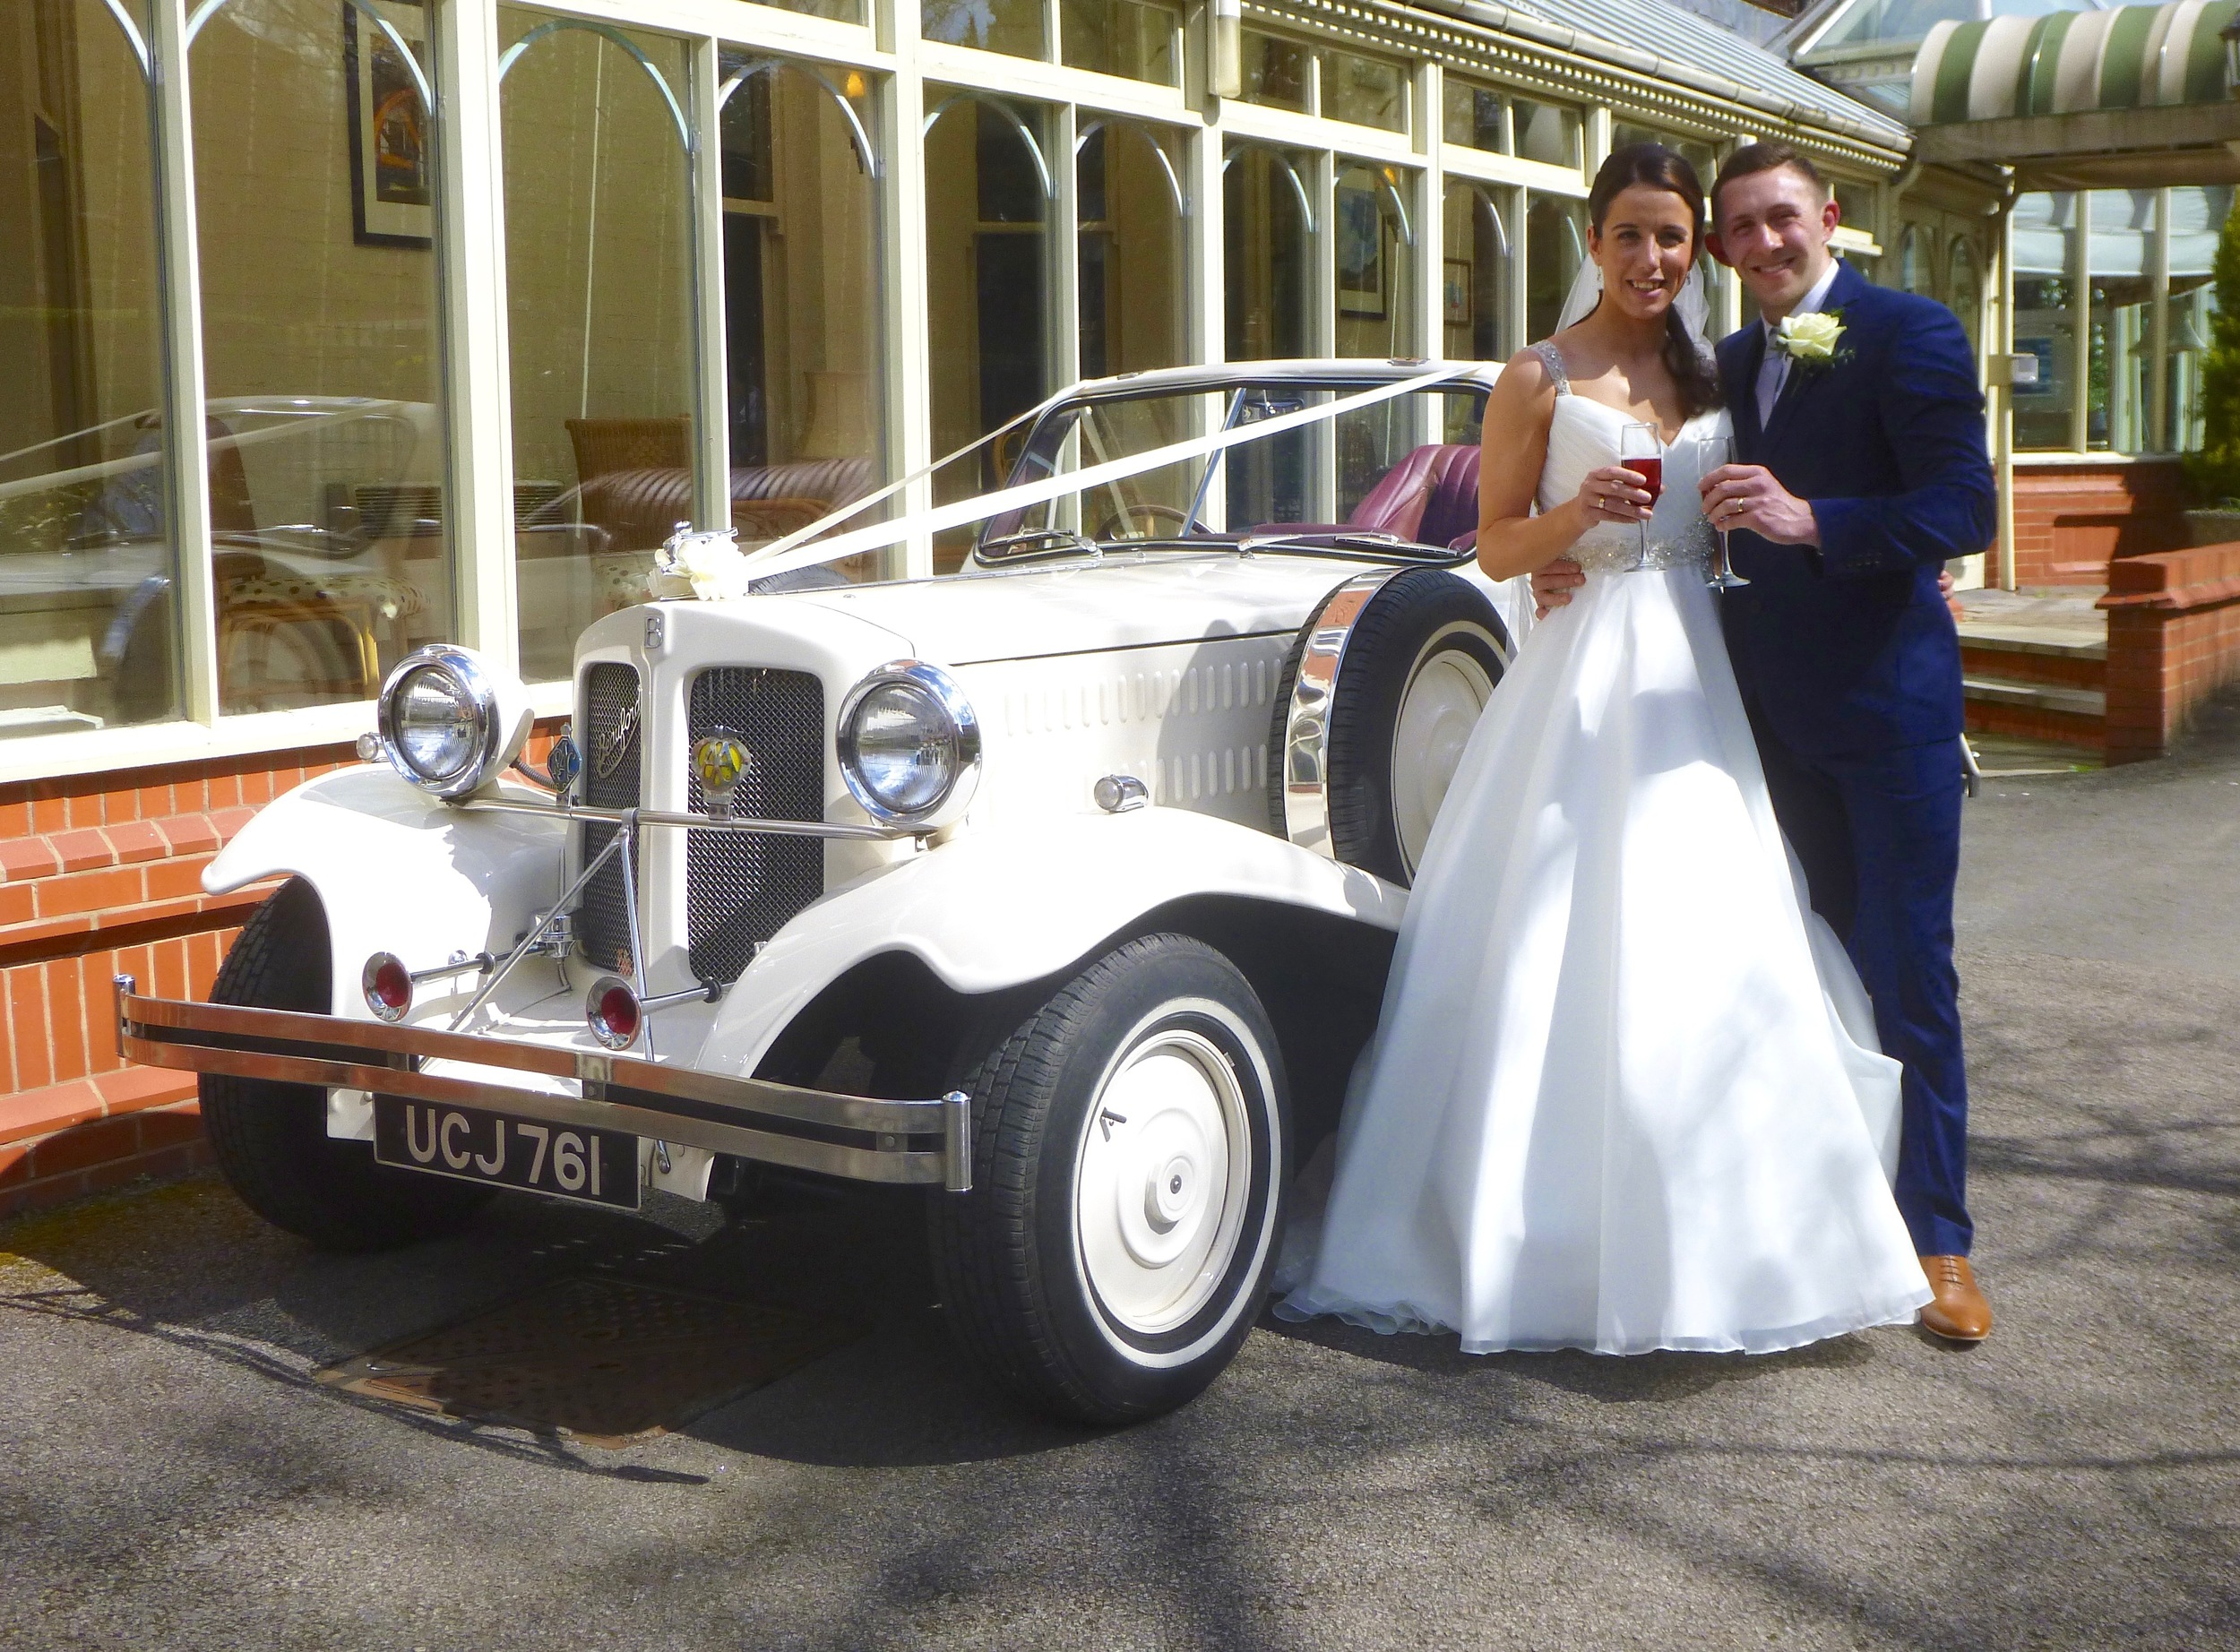 What a change from snow earlier in the day. Kimberley and Daniel enjoying a toast prior to an open top drive in the Beauford. Our best wishes to the happy couple. We really enjoyed playing a small part in the occasion.